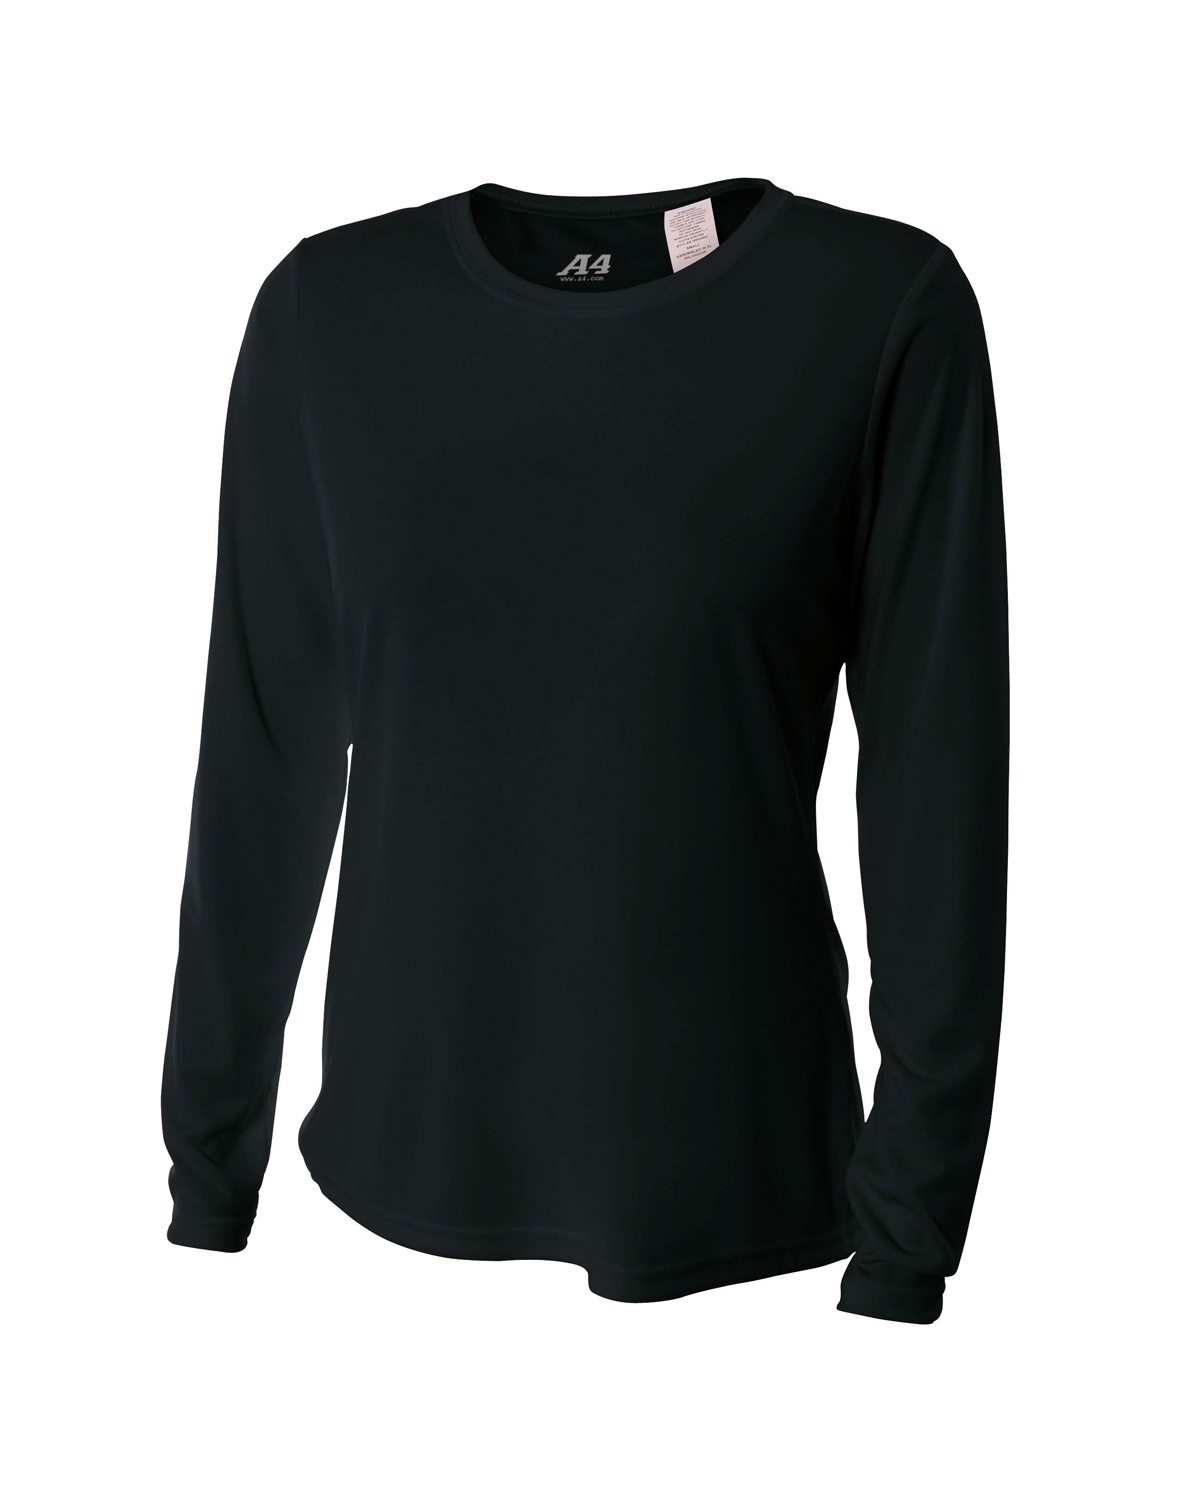 'A4 NW3002 Ladies' Long Sleeve Cooling Performance Crew Shirt'